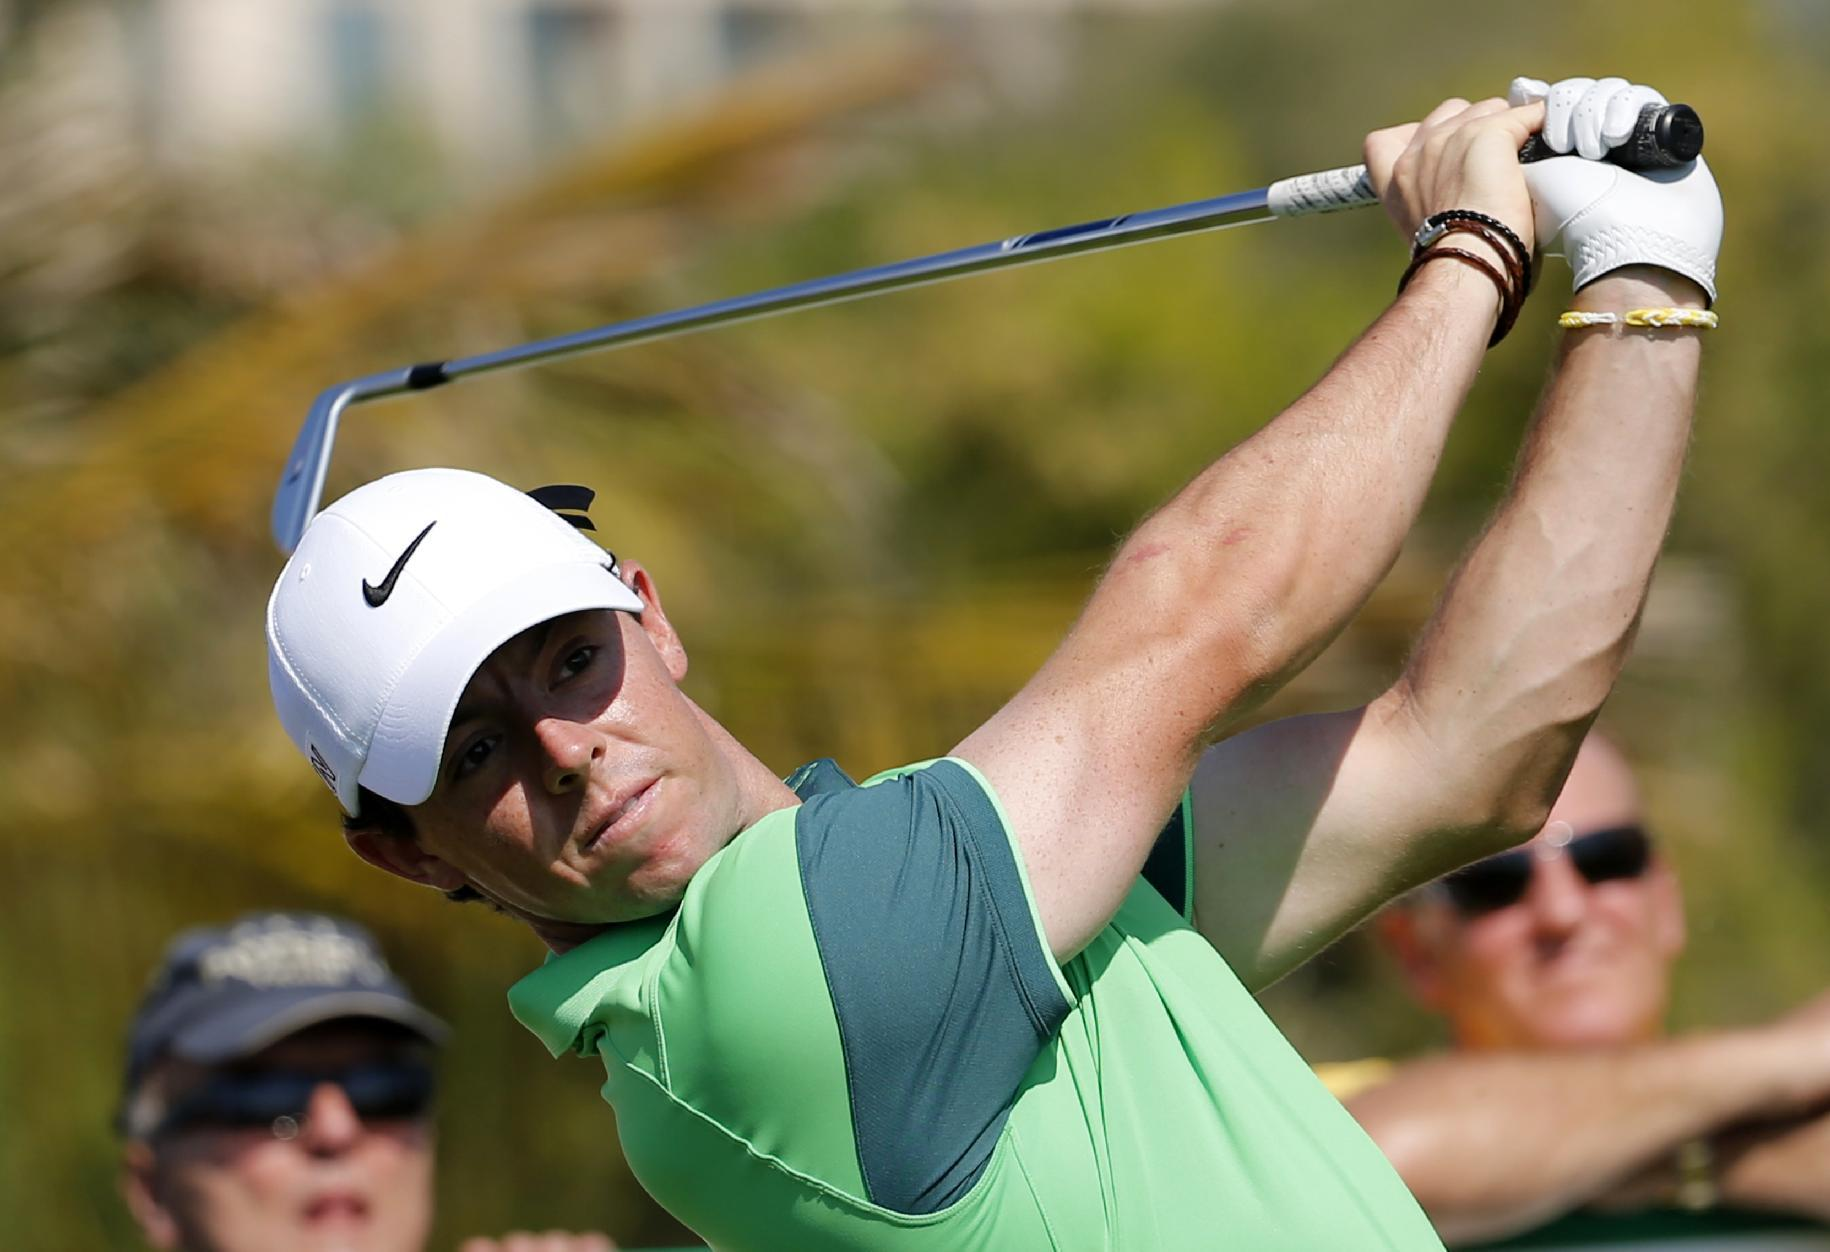 Rory McIlroy off to another good start in the Dubai Desert Classic